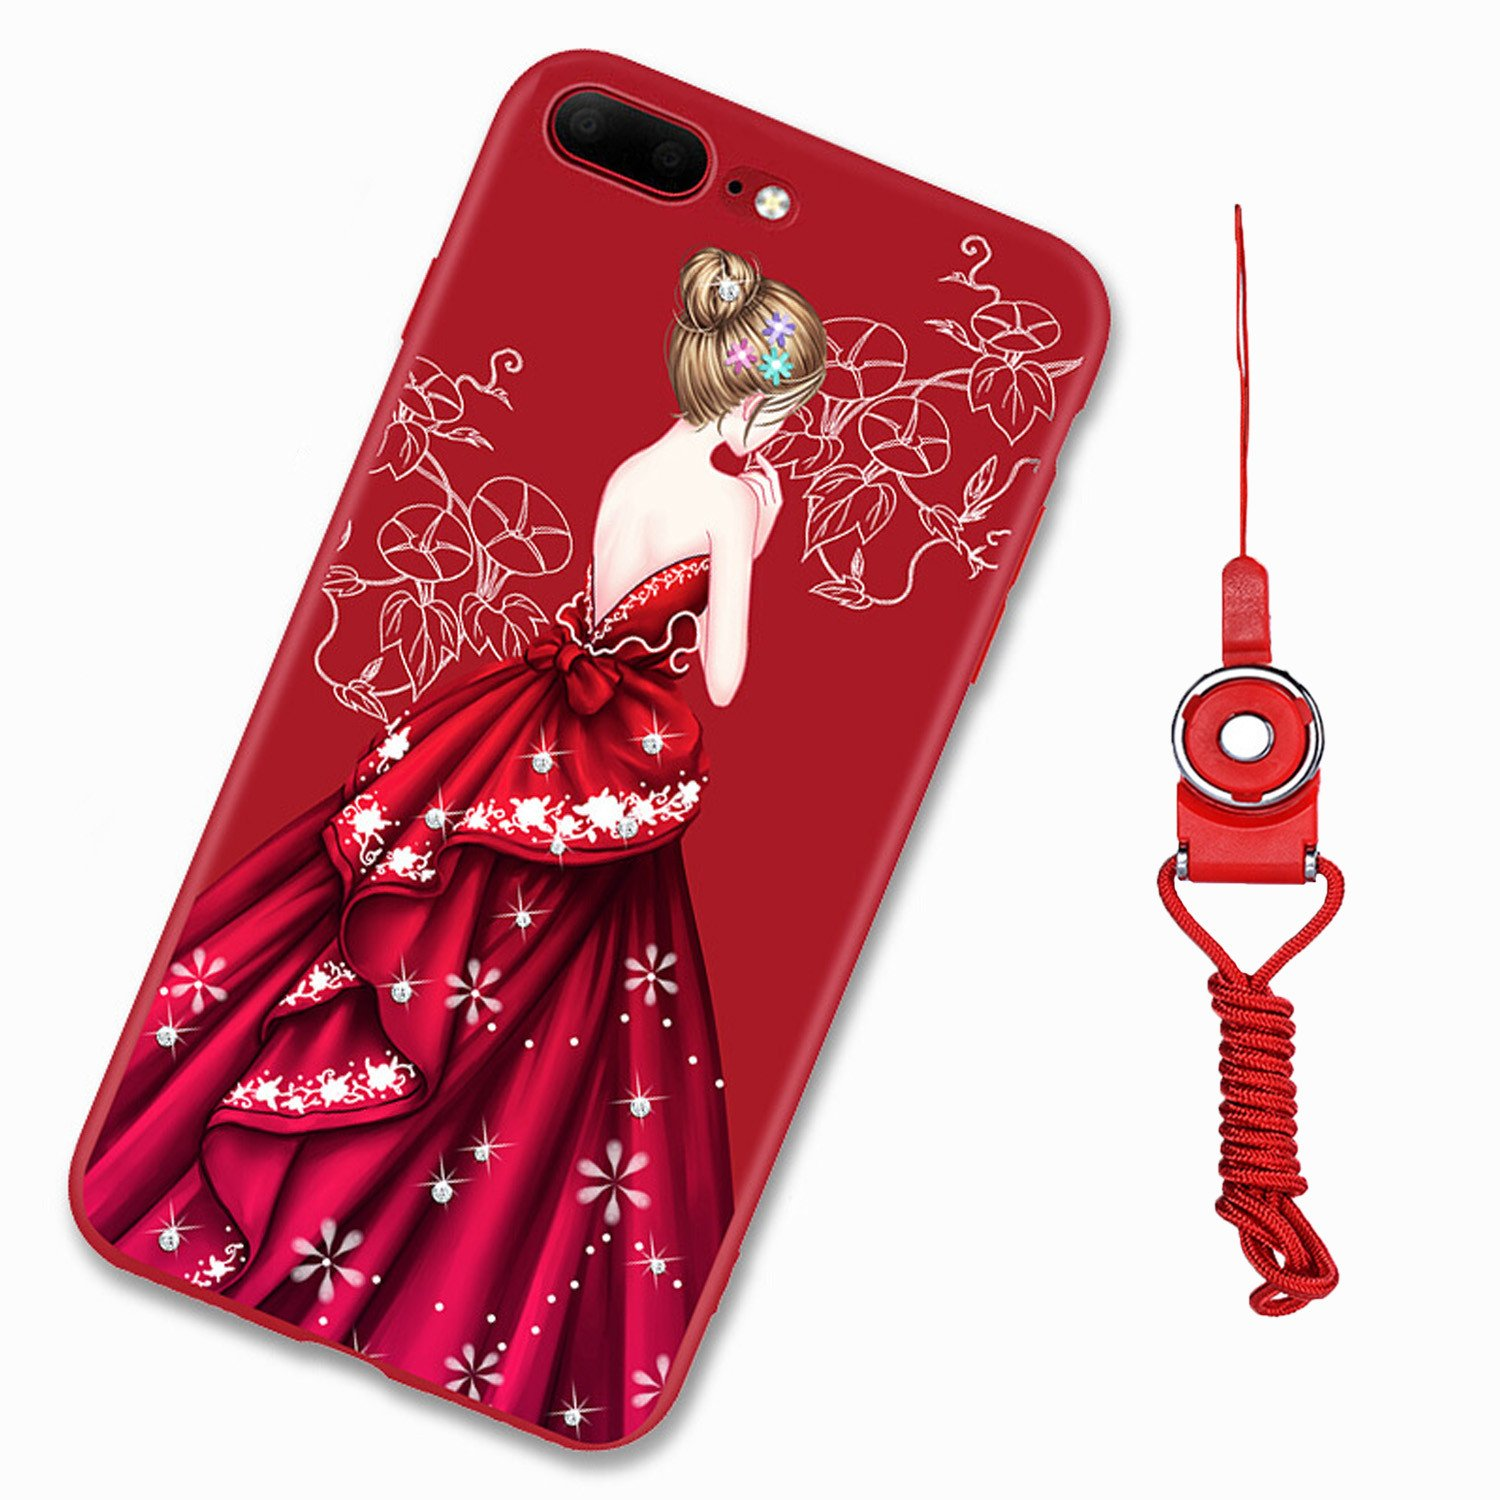 For iPhone 7 Plus Case, iPhone 8 Plus Case, GIZEE Glitter Cute Phone Case Girl In Dress Pattern Ultra Thin Slim Fit Soft TPU Protective Bumper Cover Red for Apple iPhone 7/8 Plus 5.5 Inch - Style 1